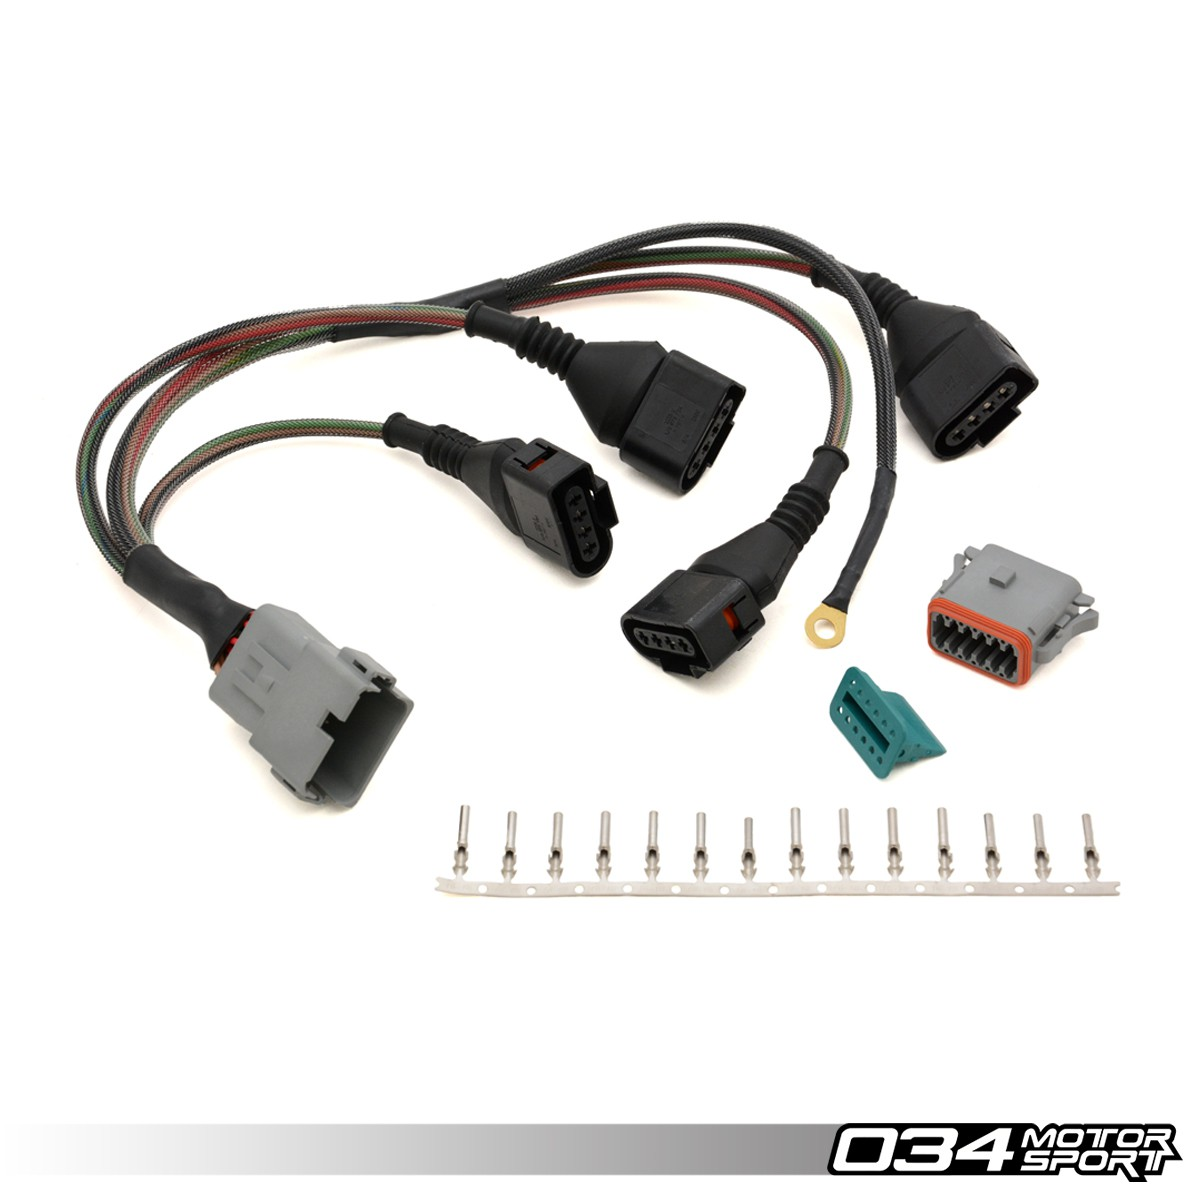 repair update harness audi volkswagen 18t with 4 wire coils 034motorsport 034 701 0004 2 repair update harness, audi volkswagen 1 8t with 4 wire coils Audi Ignition Coil Problem at crackthecode.co